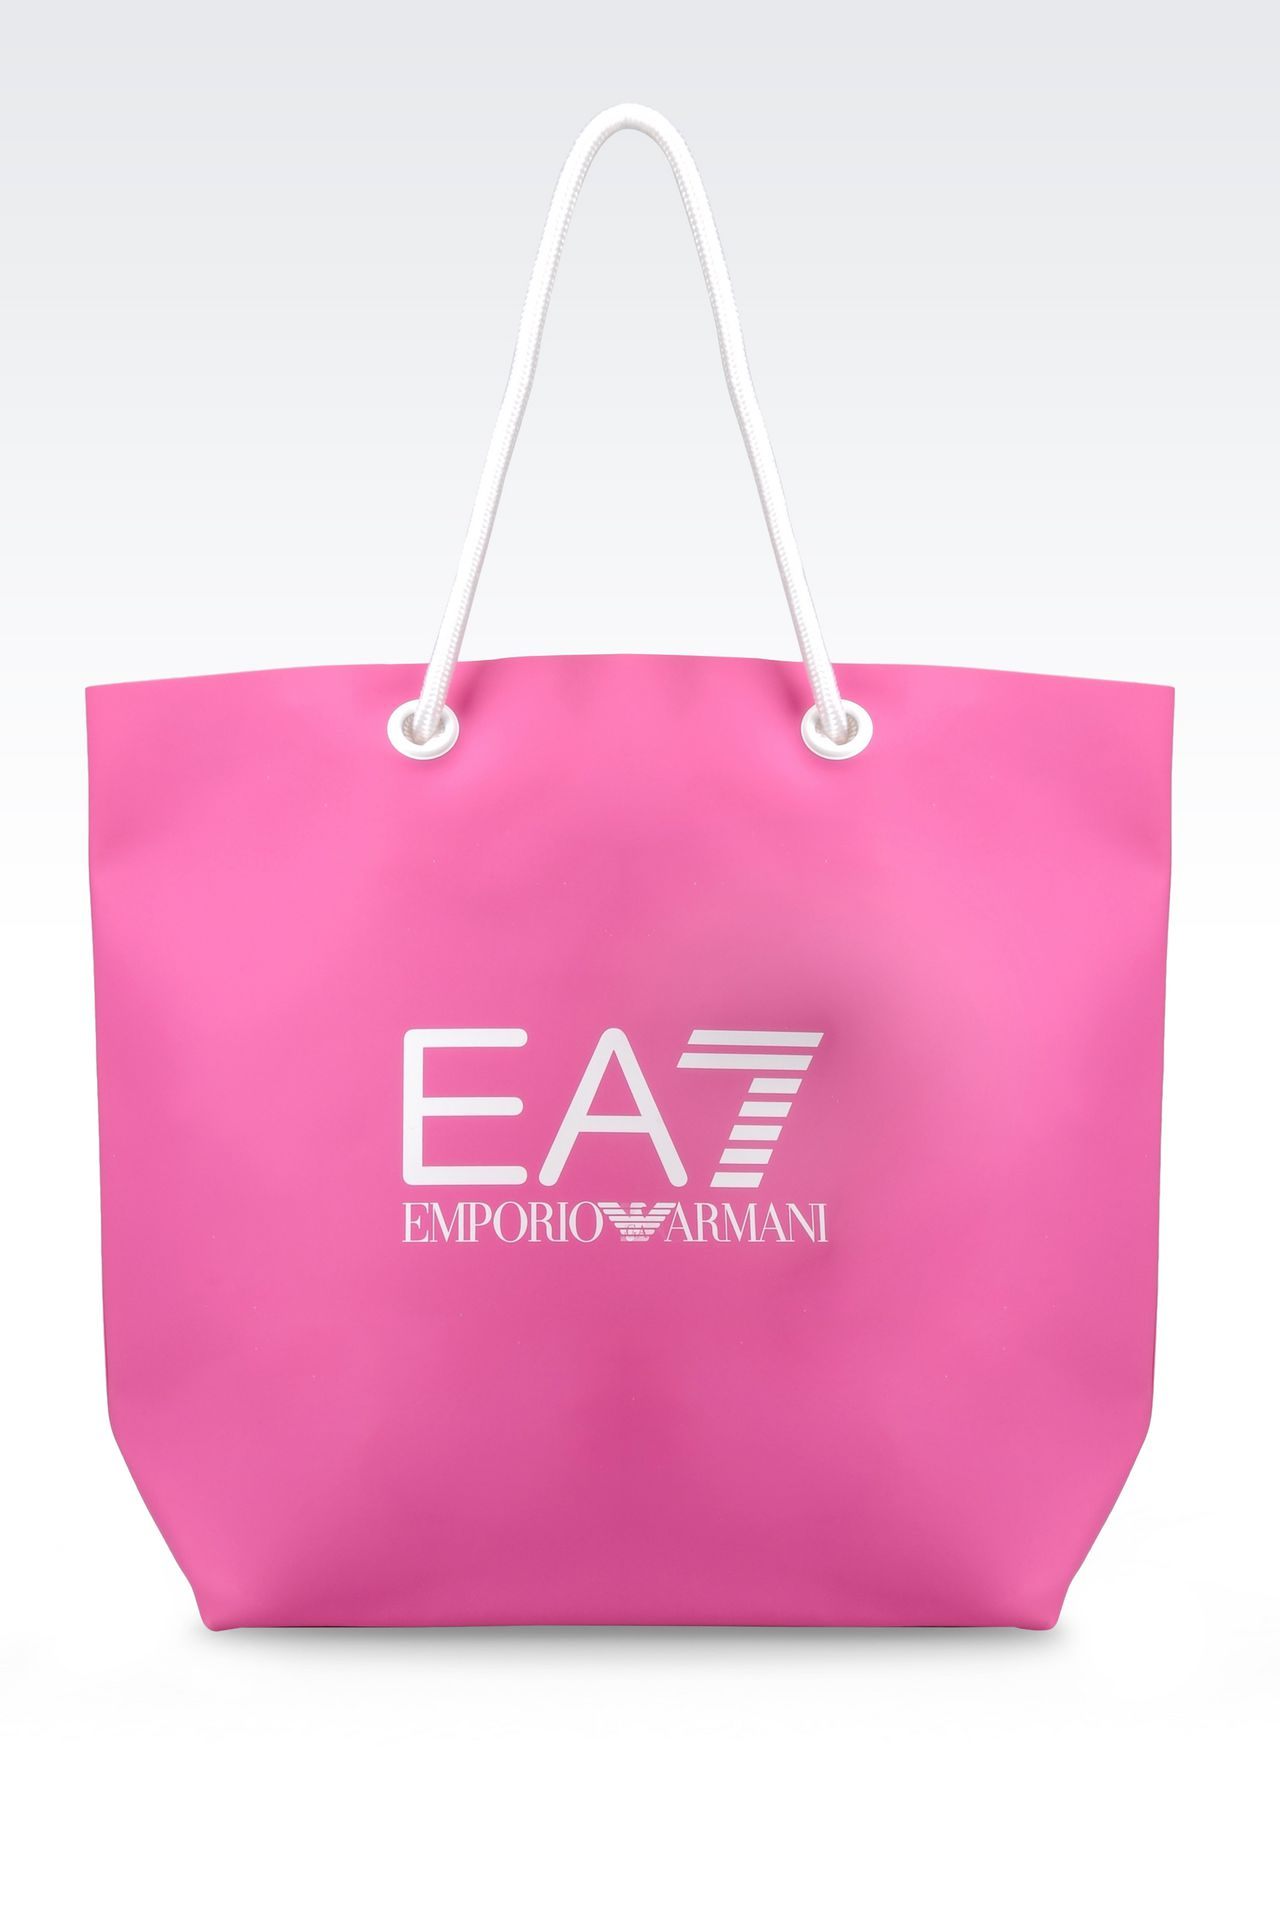 EA7 Women SEA WORLD LINE BEACH BAG, PVC - Armani.com